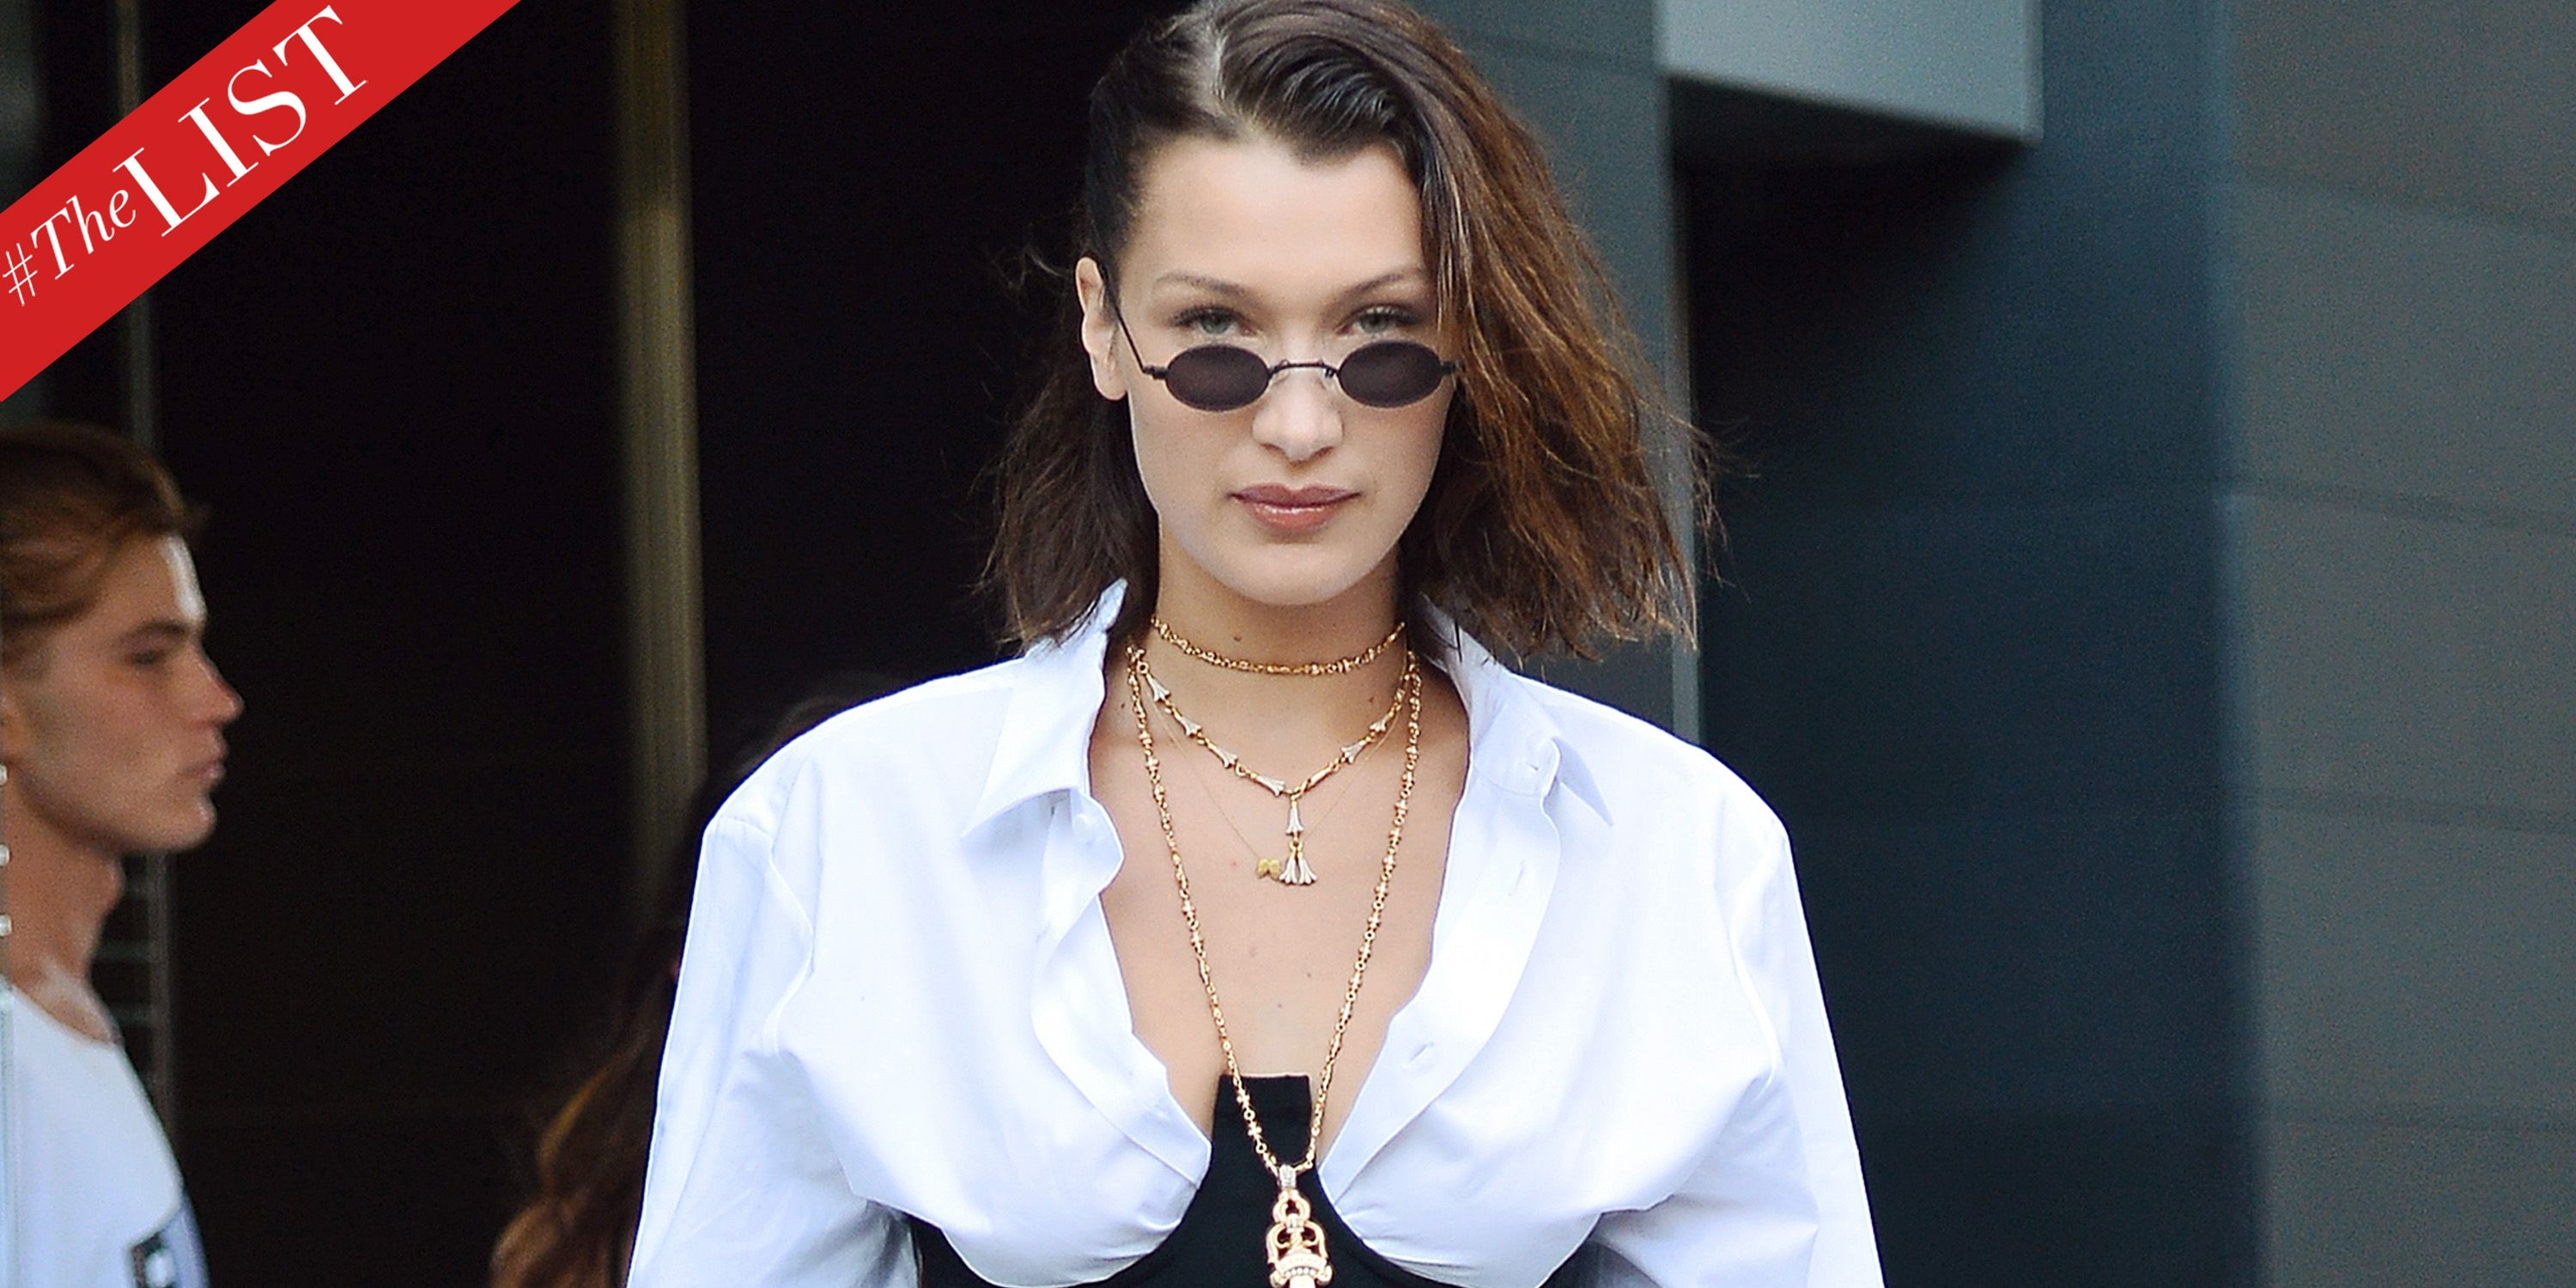 b3911e20de Bella Hadid Small Sunglasses Trend - Tiny 90s Sunglasses Trend